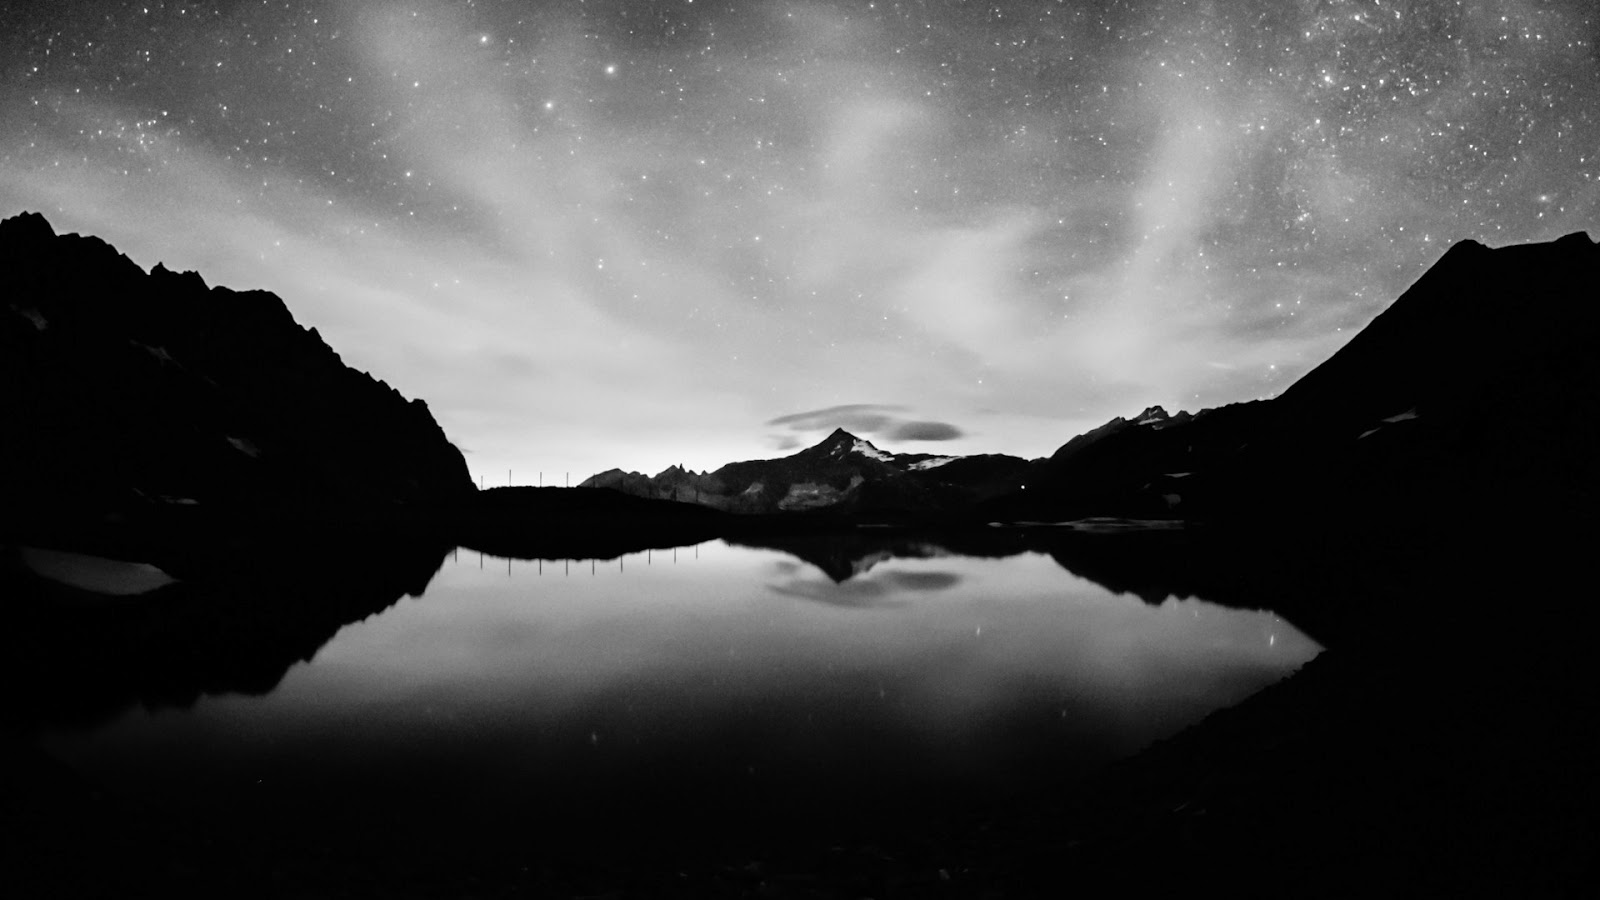 Black And White Desktop Wallpaper 1600x900